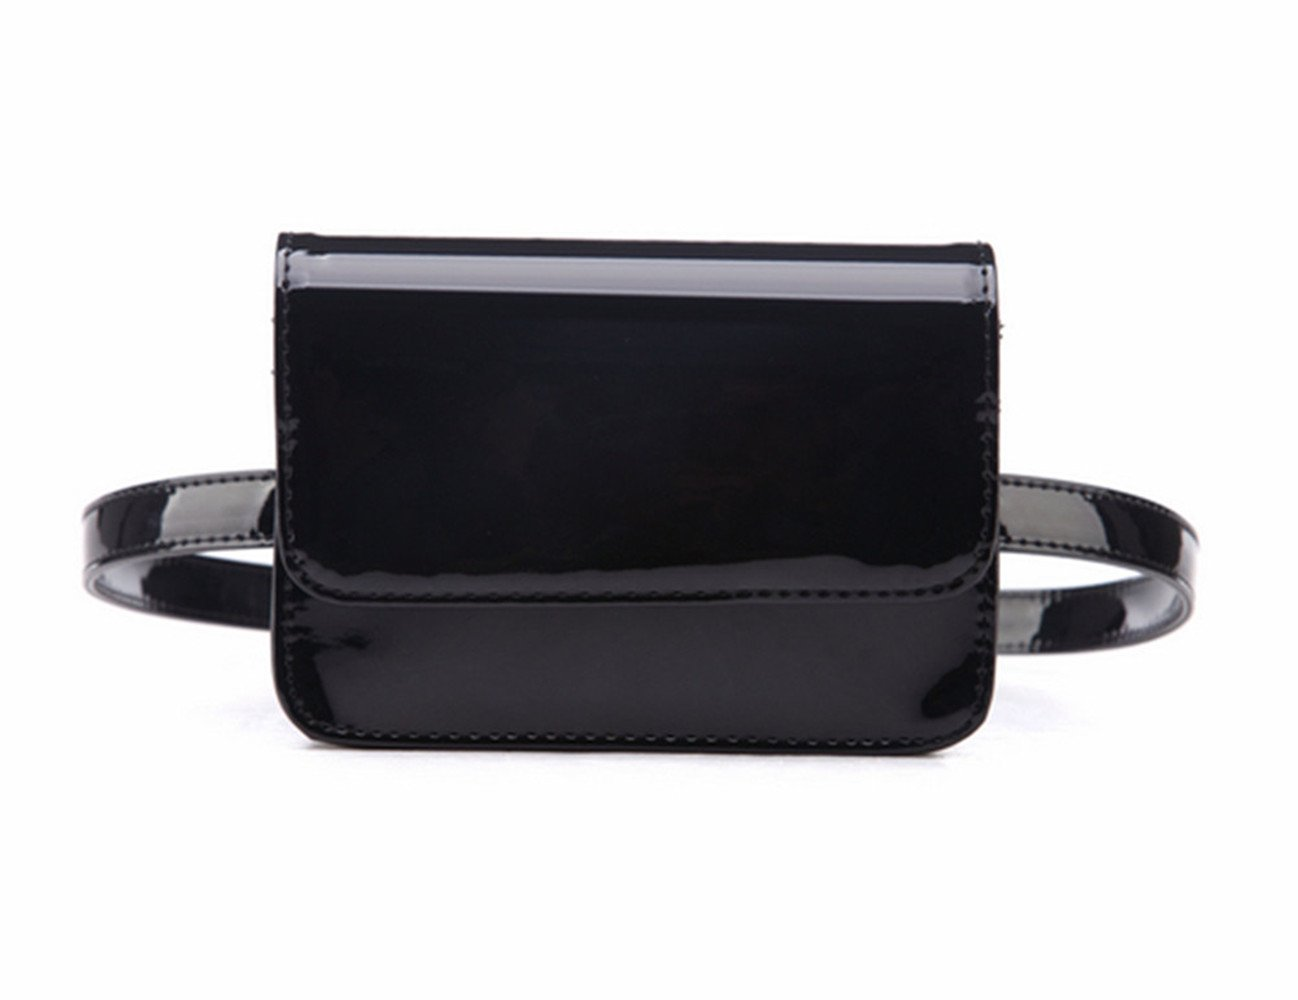 Olivia Elegant Patent Leather Fanny Pack PU Leather Waist Bag Waterproof Summer Beach Fanny Pack Bum Bag Travel Cell Phone Bag (Patent Black)